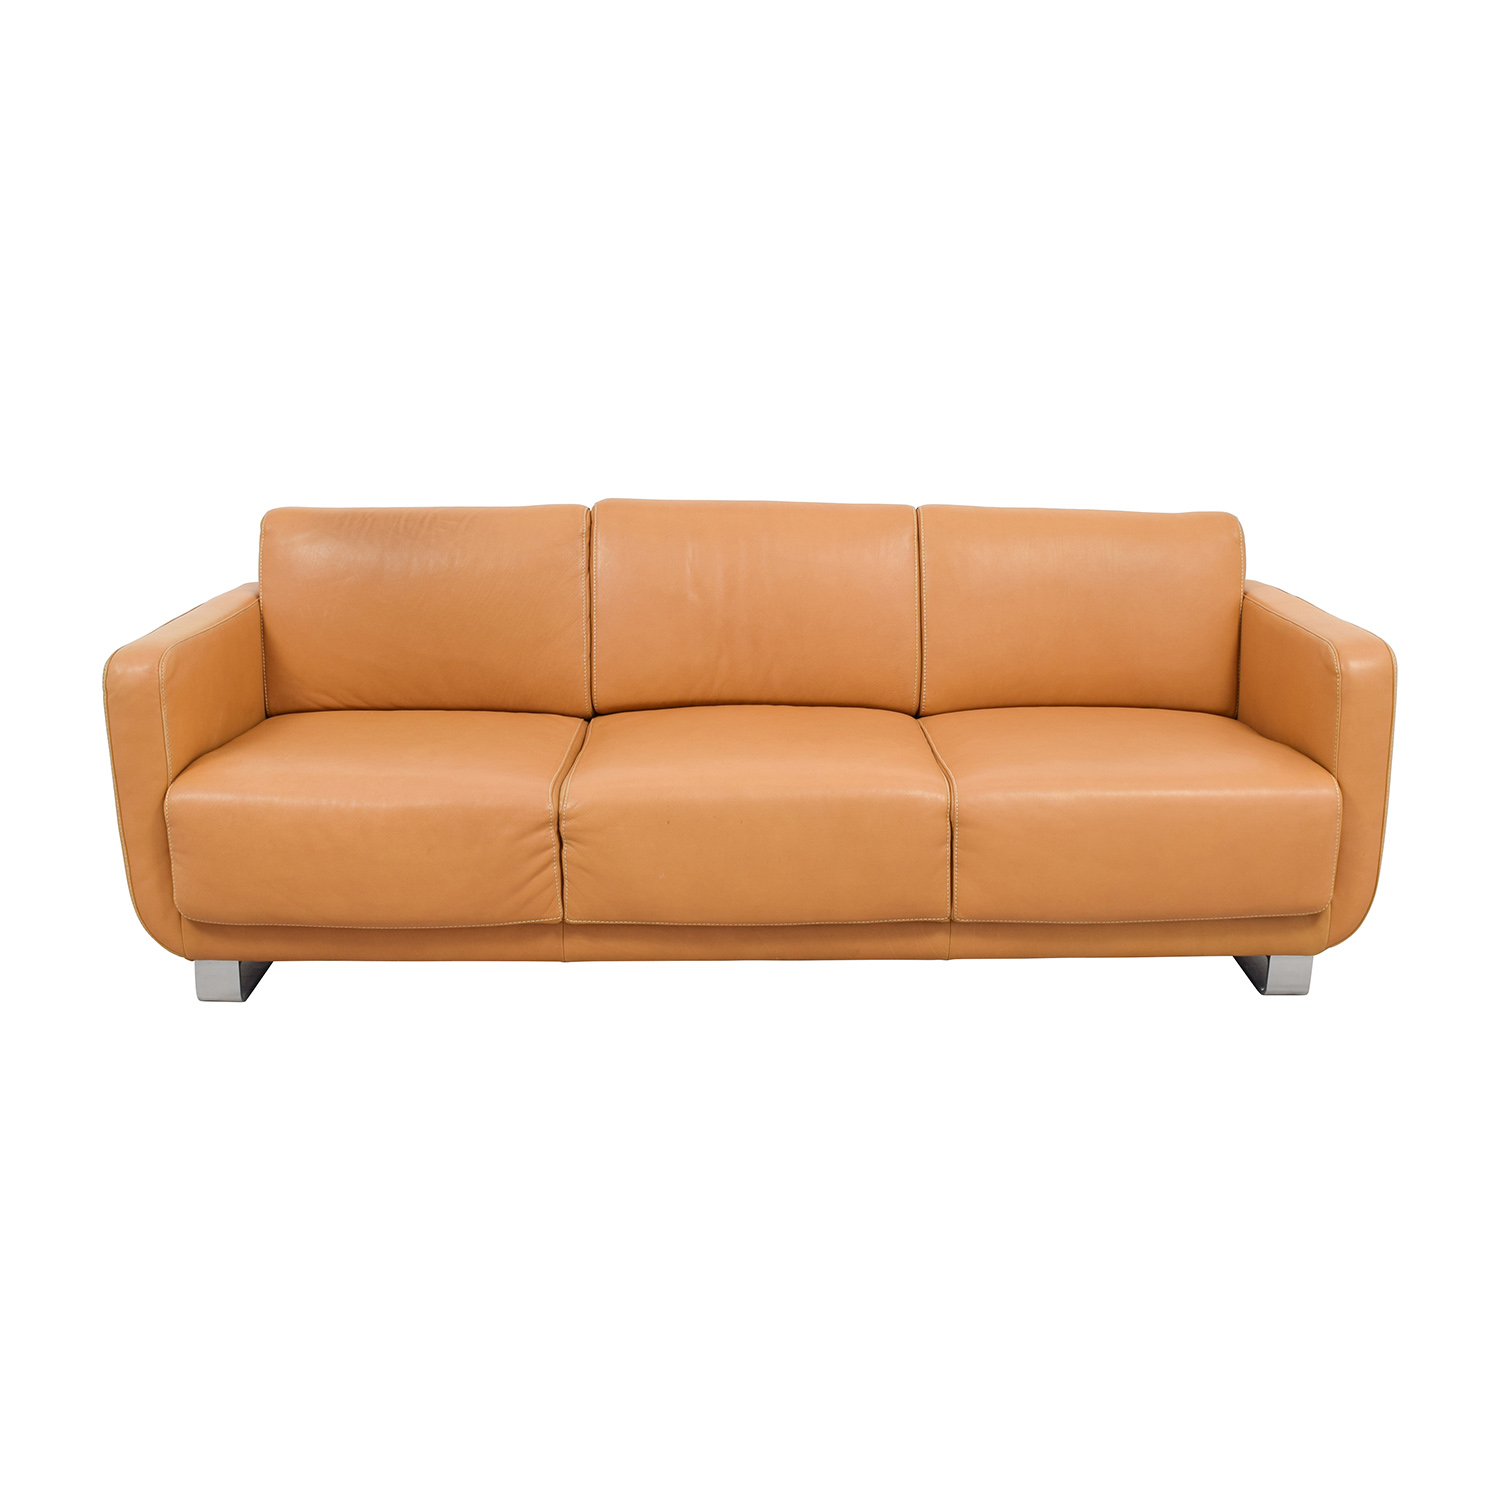 Eitelkeit Schillig Sofas Foto Von W. Light Brown Leather Sofa / Classic